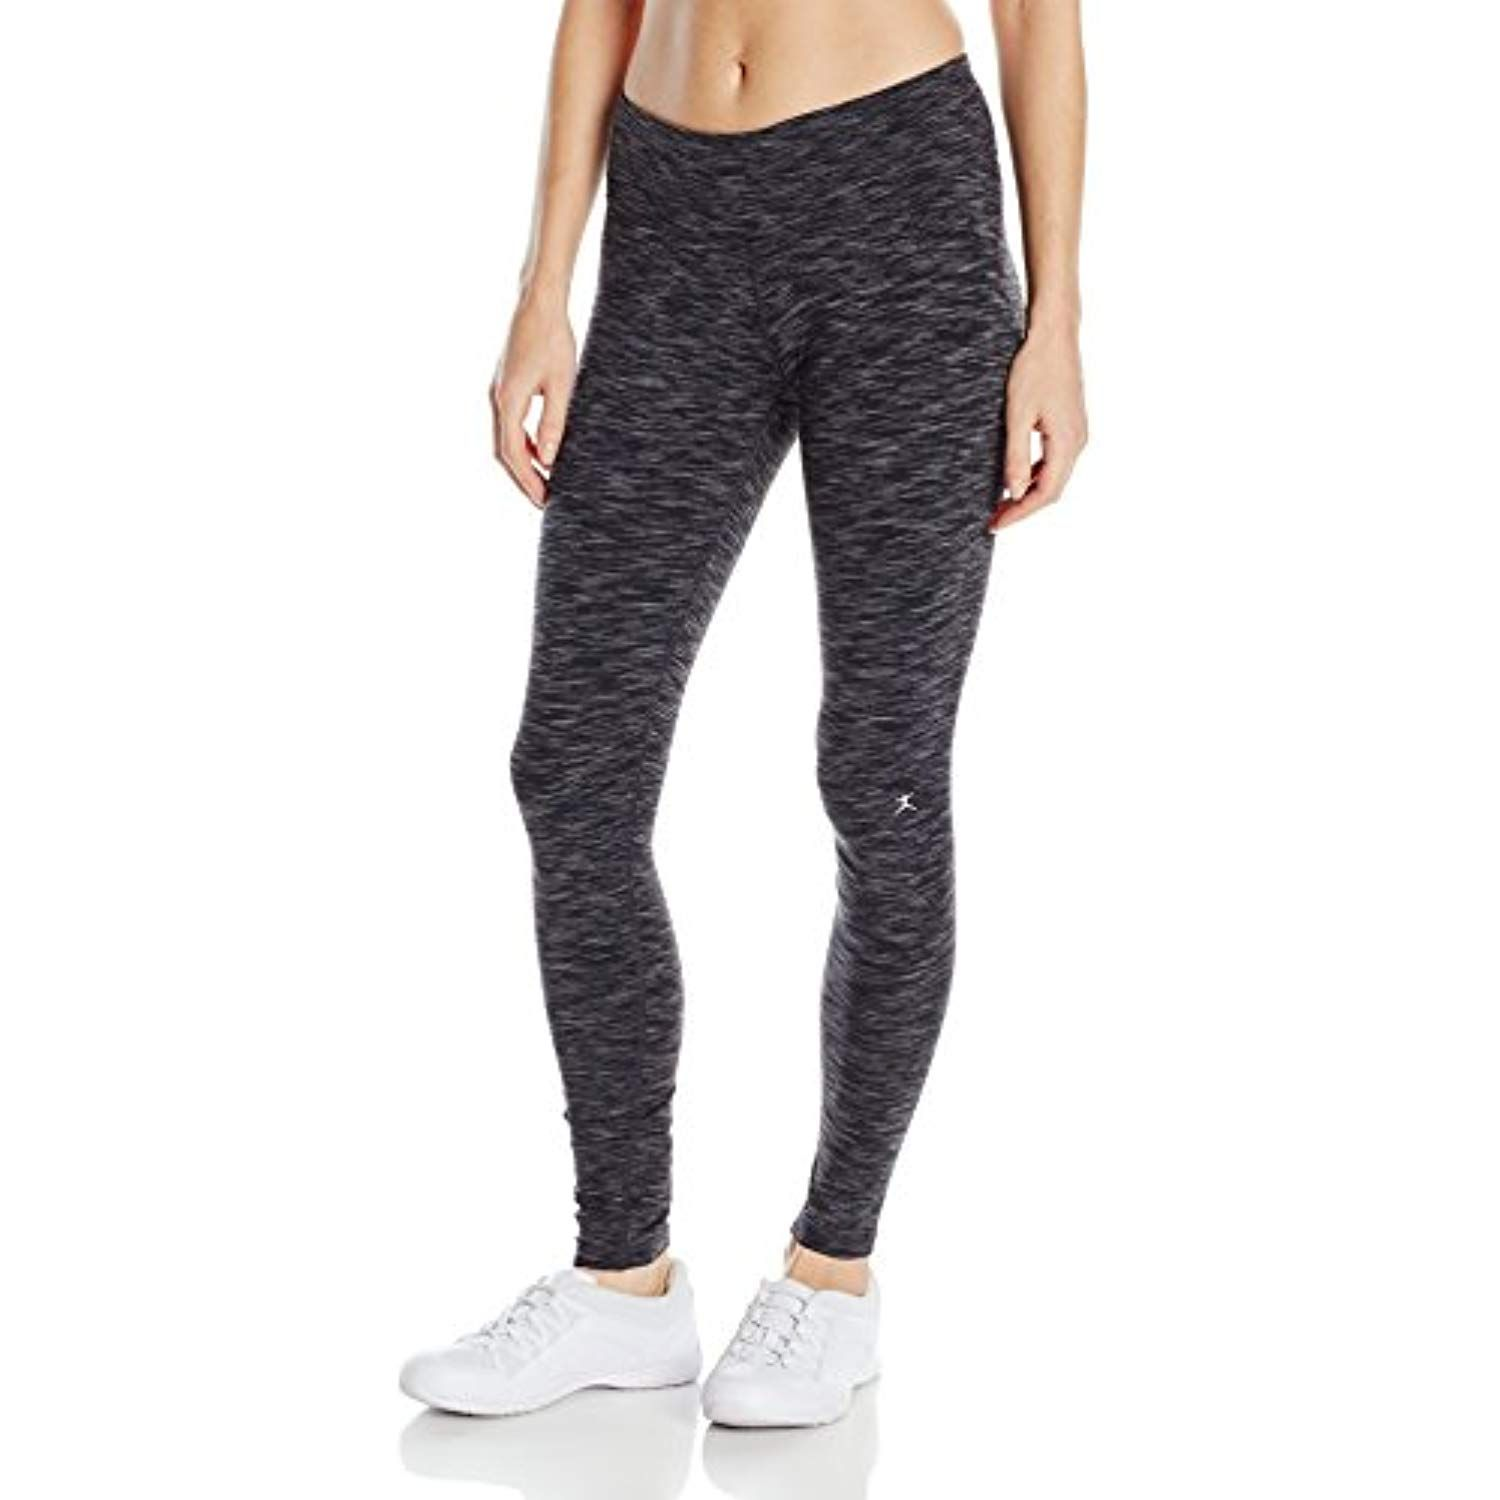 e5716f1aa0b72 Danskin Women's Supplex Ankle Legging with Wide Waistband >>> Read more at  the image link. #Clothing